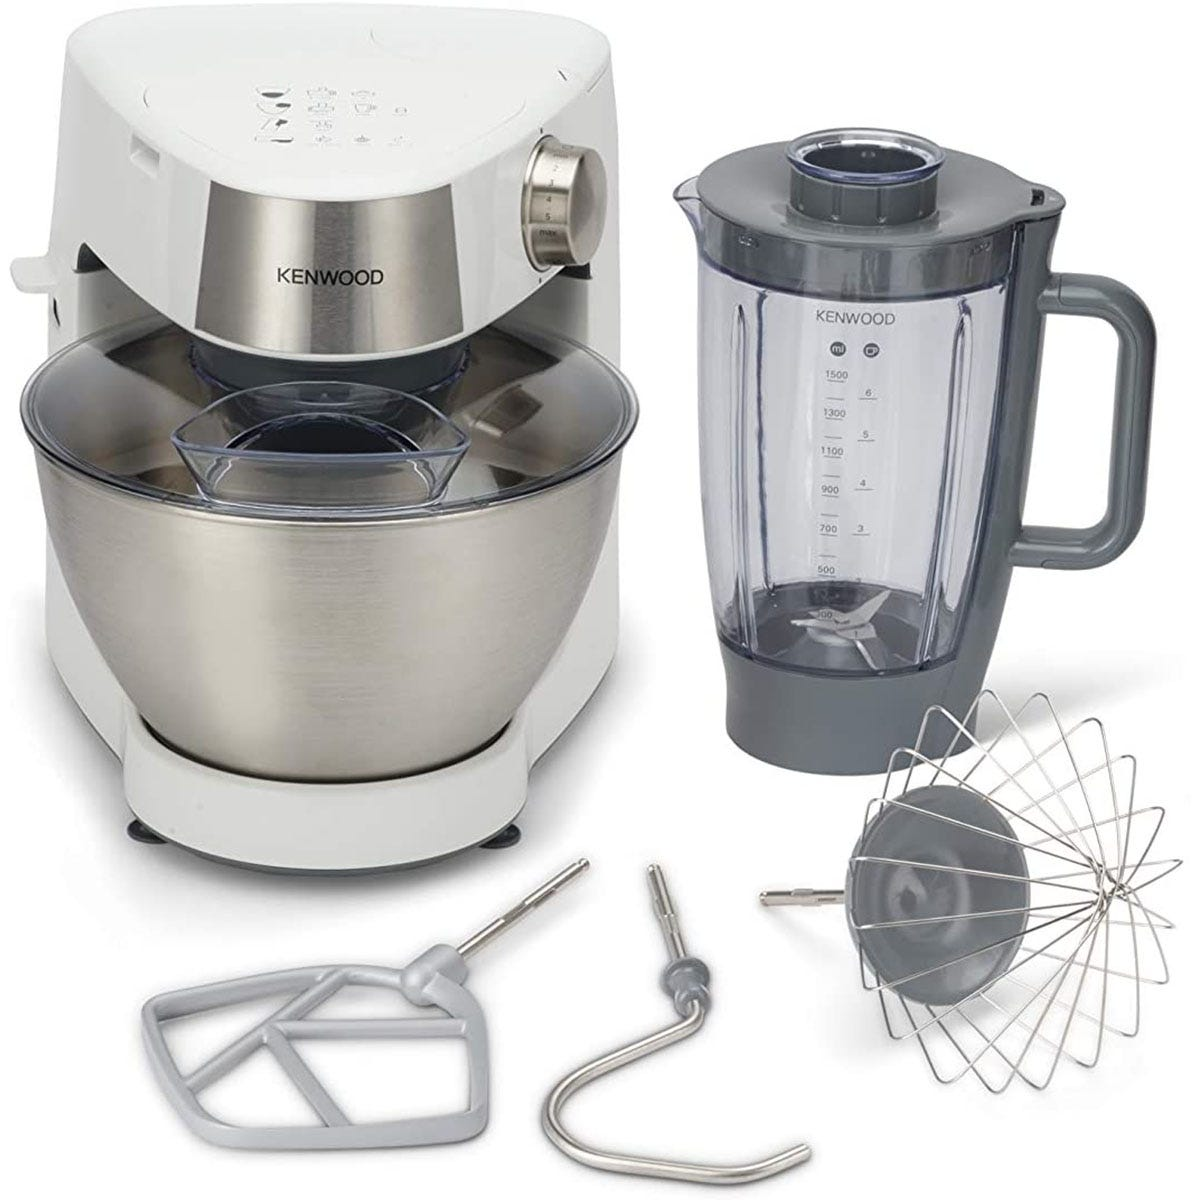 Kenwood KHC29 BOWH Prospero 4.3L 1000W Compact Stand Mixer - Silver